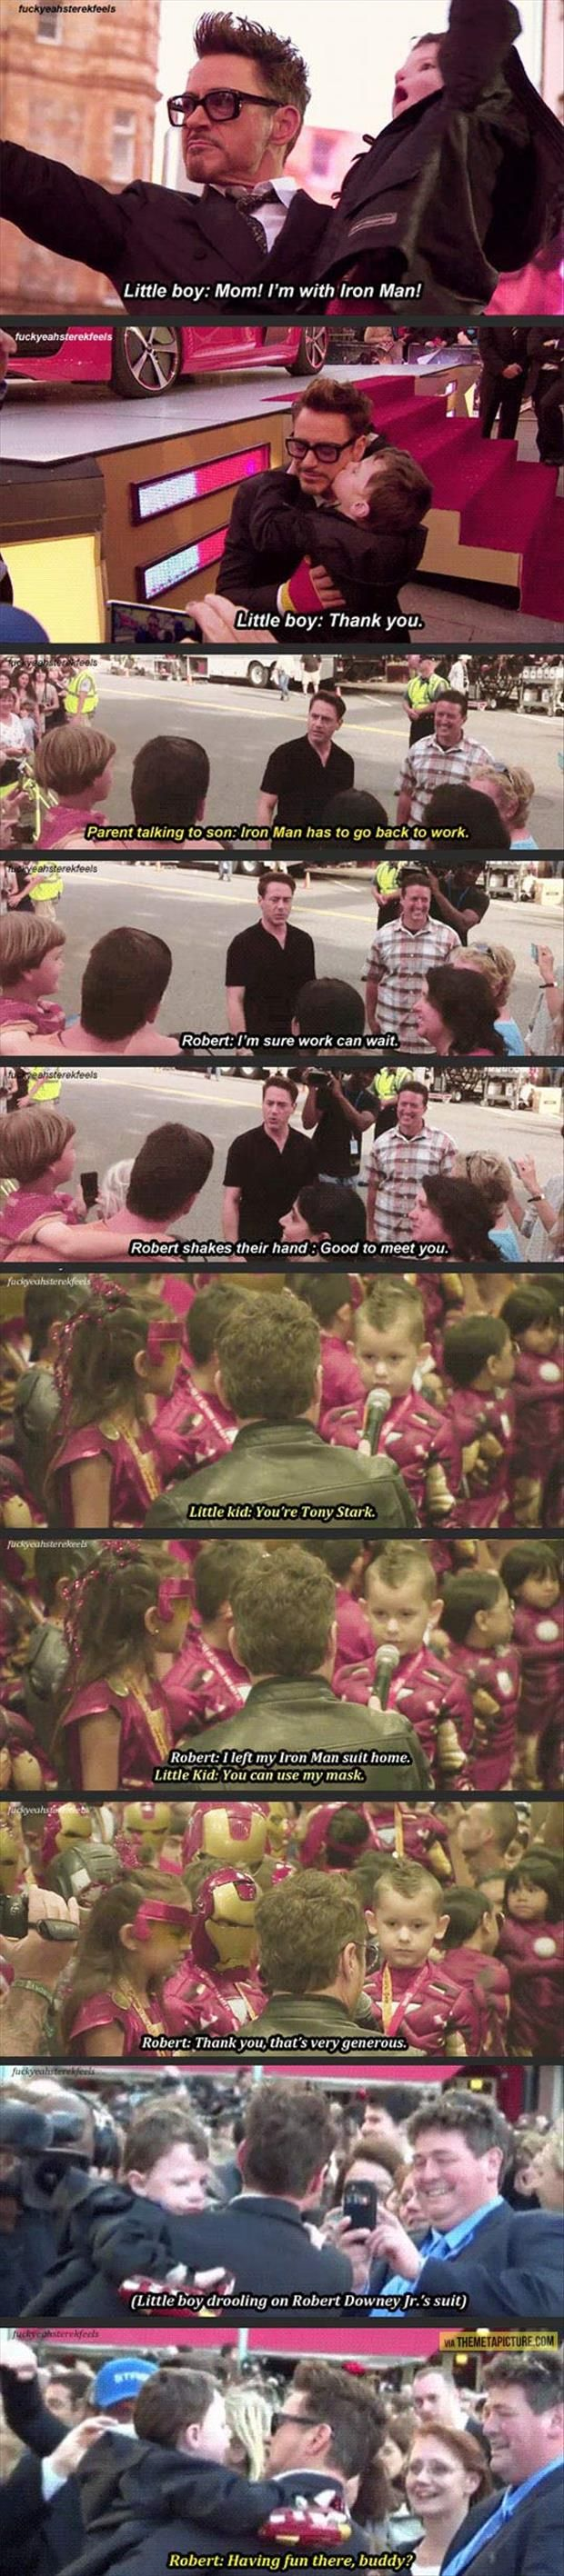 This is why I love Robert Downey Jr.! He has such a way with kids! And he's so sweet